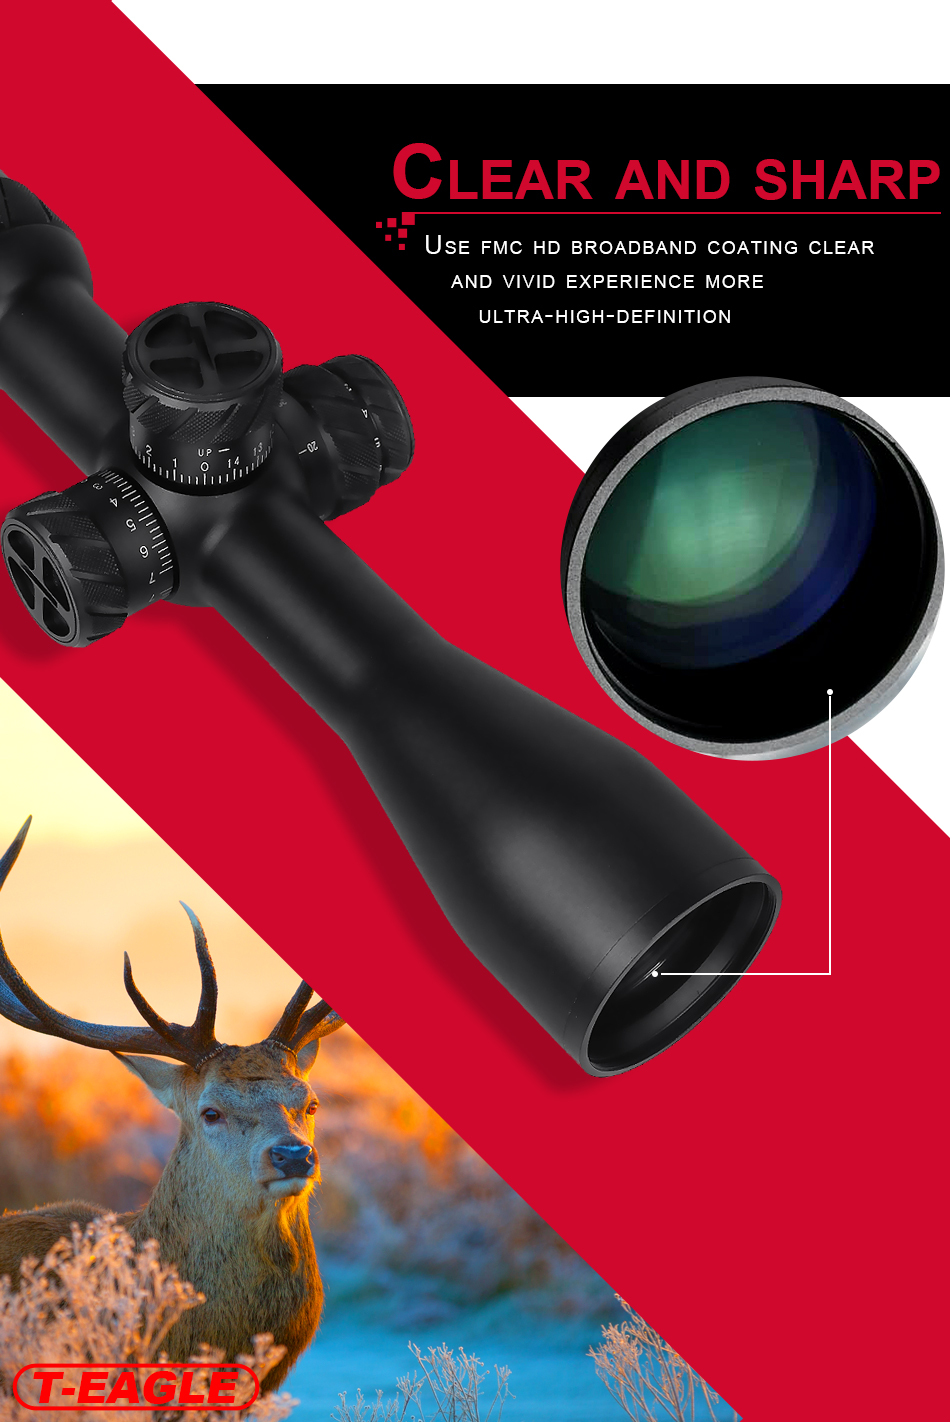 Wholesale T-EAGLE IMAX ED 2-16x44 SFIR For PCP Air gun Riflescope Tactical Rifles Scope Light Red Green hunting optics sight